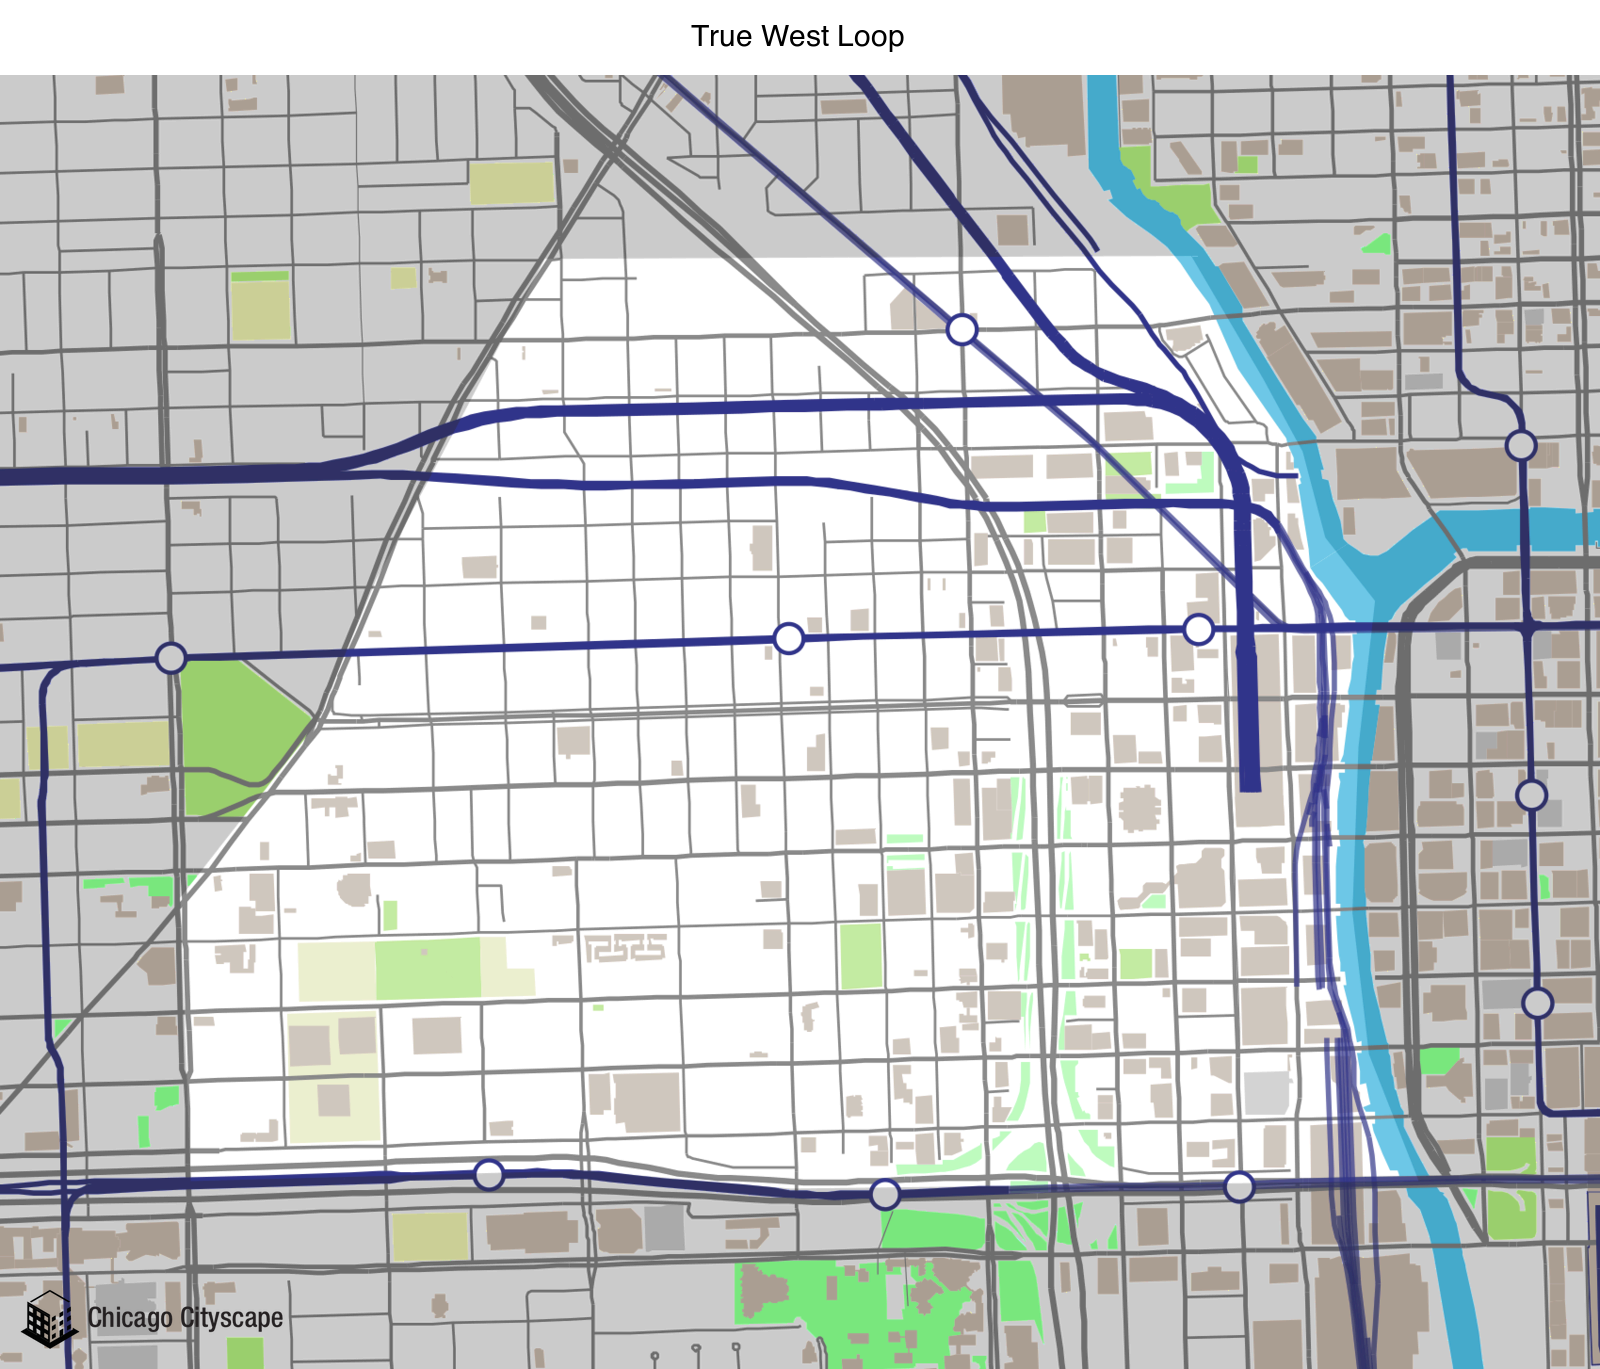 Map Of West Loop Chicago Map of building projects, properties, and businesses in the True